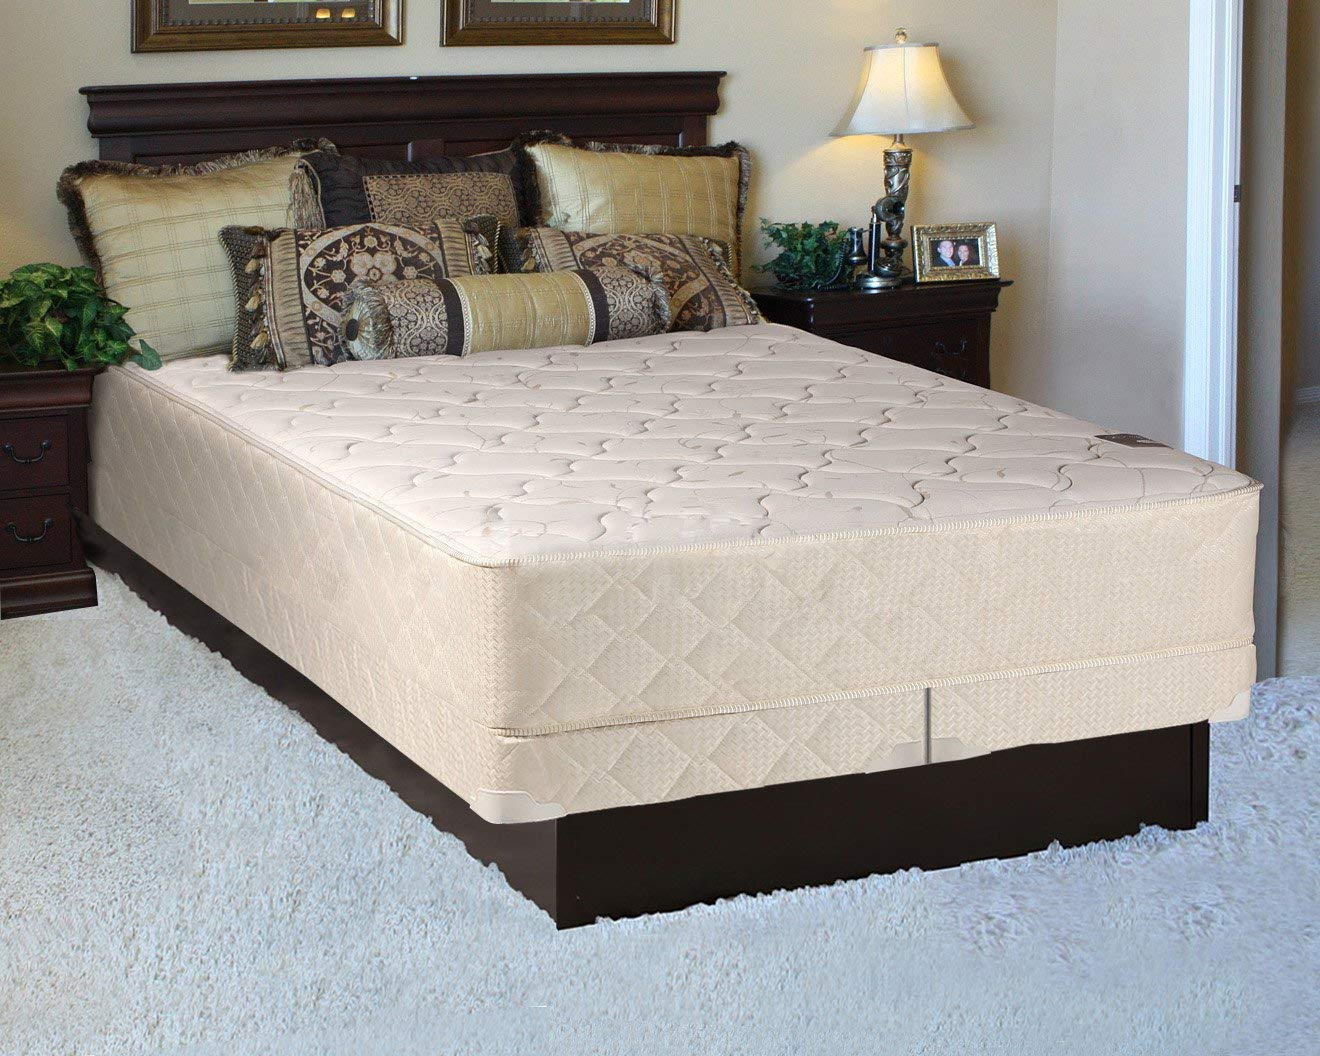 "Mattress Solution 225y-4/6-2LPS 10-Inch Fully Assembled Innerspring Medium Plush Mattress and 4"" Split Box Spring/Foundation Set, Full Size, White &LT Brown"